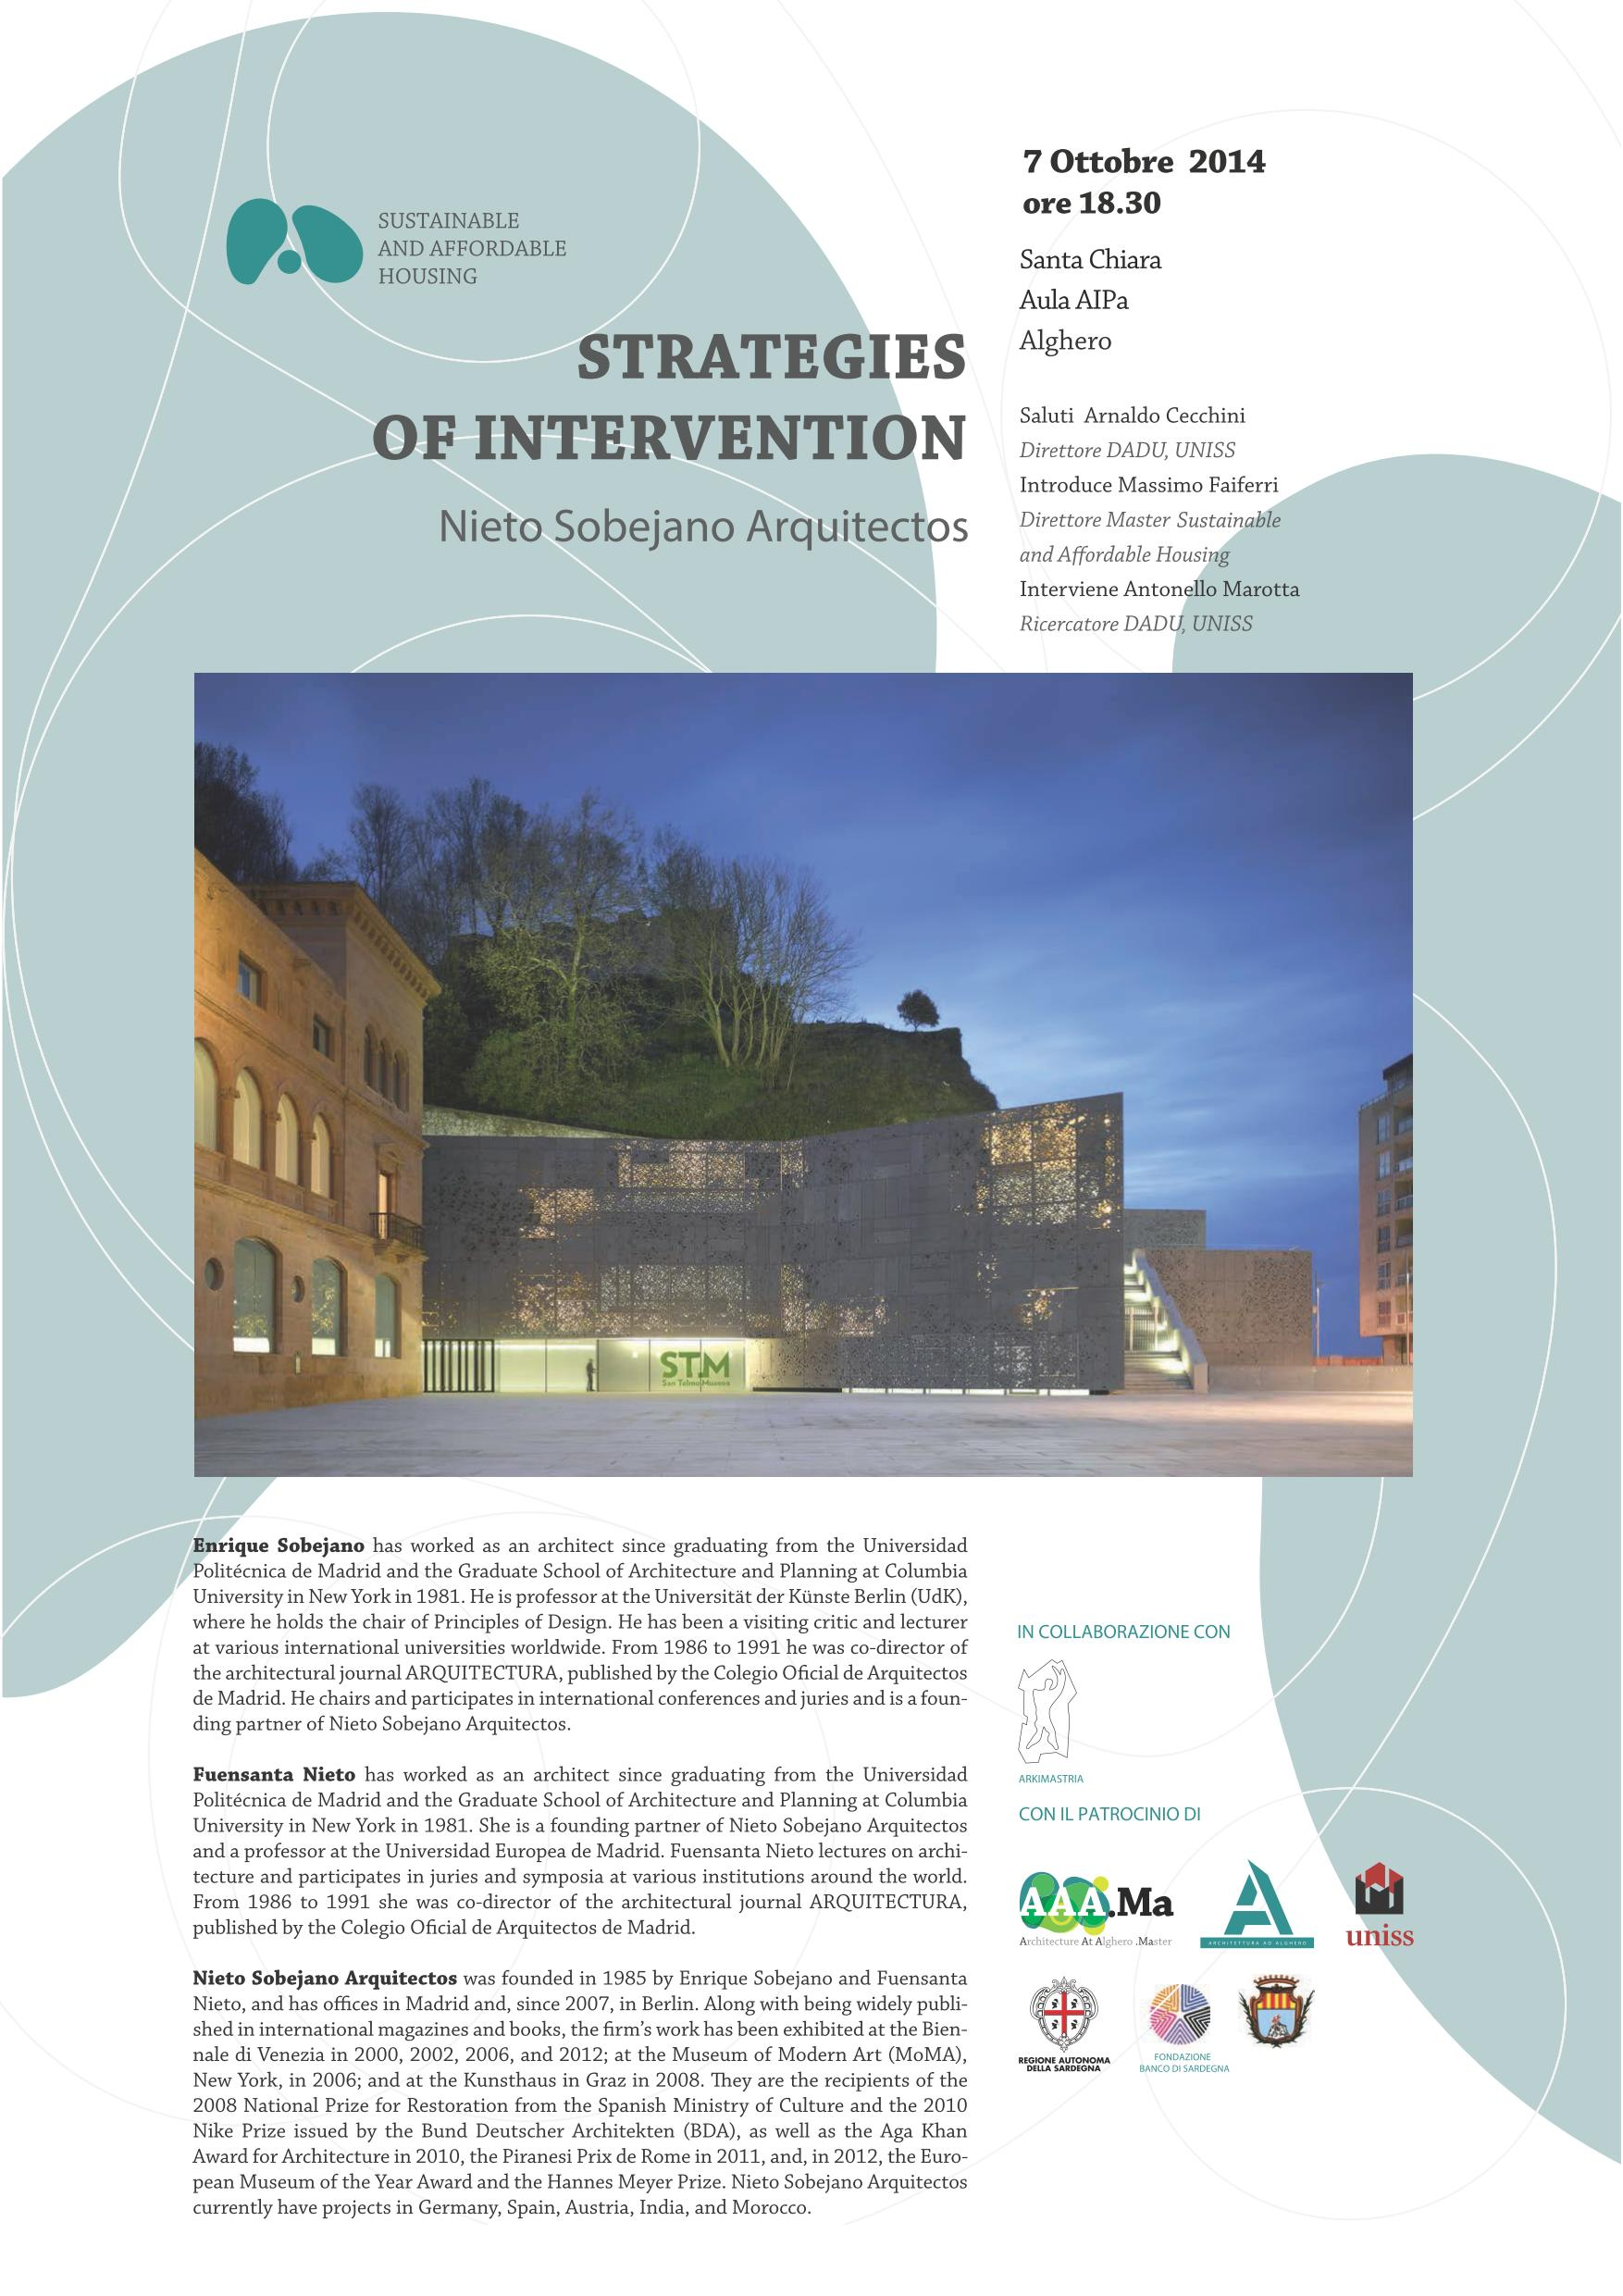 STRATEGIES OF INTERVENTION